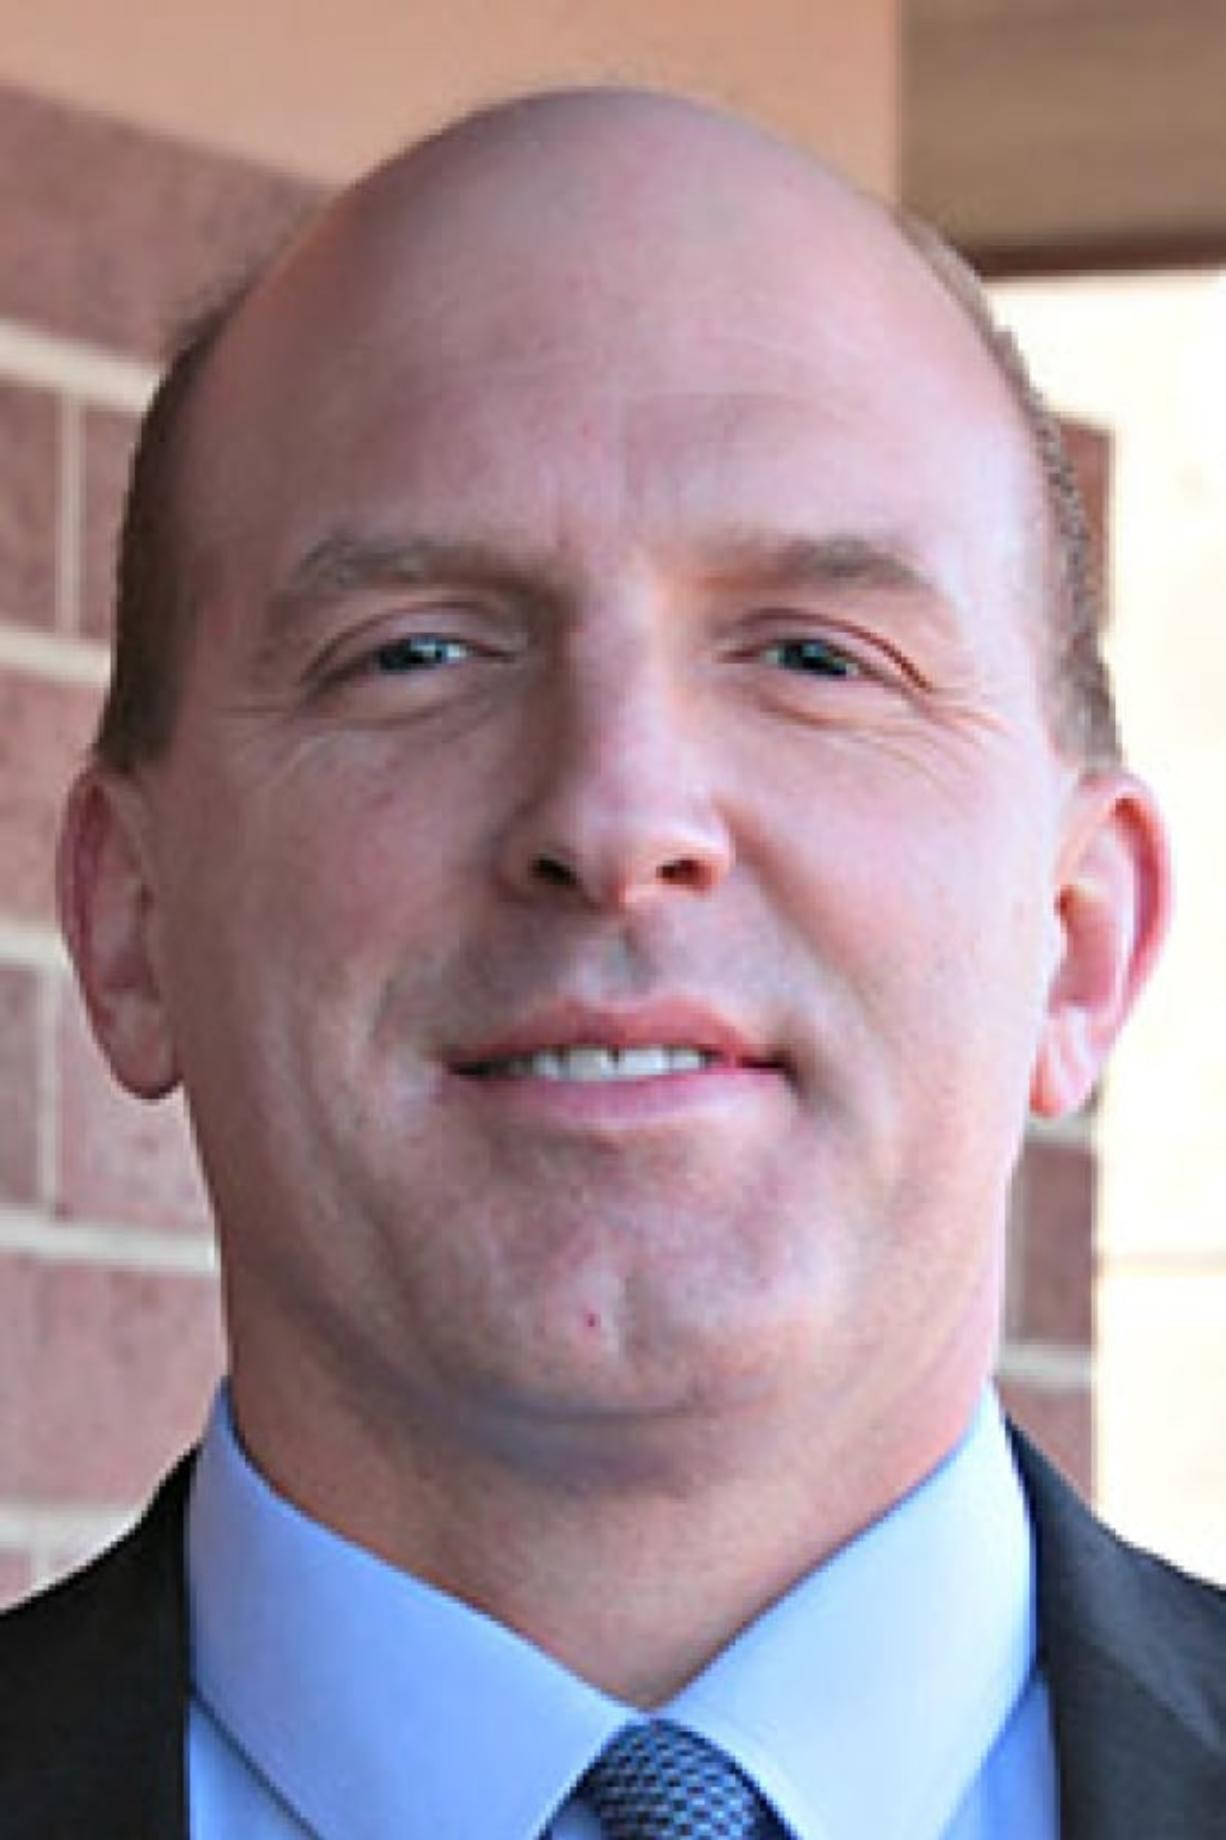 Hockinson School District announced that the school board has selected Steve Marshall, currently the director of educational resources at Camas School District, will take over as superintendent after this current school year.